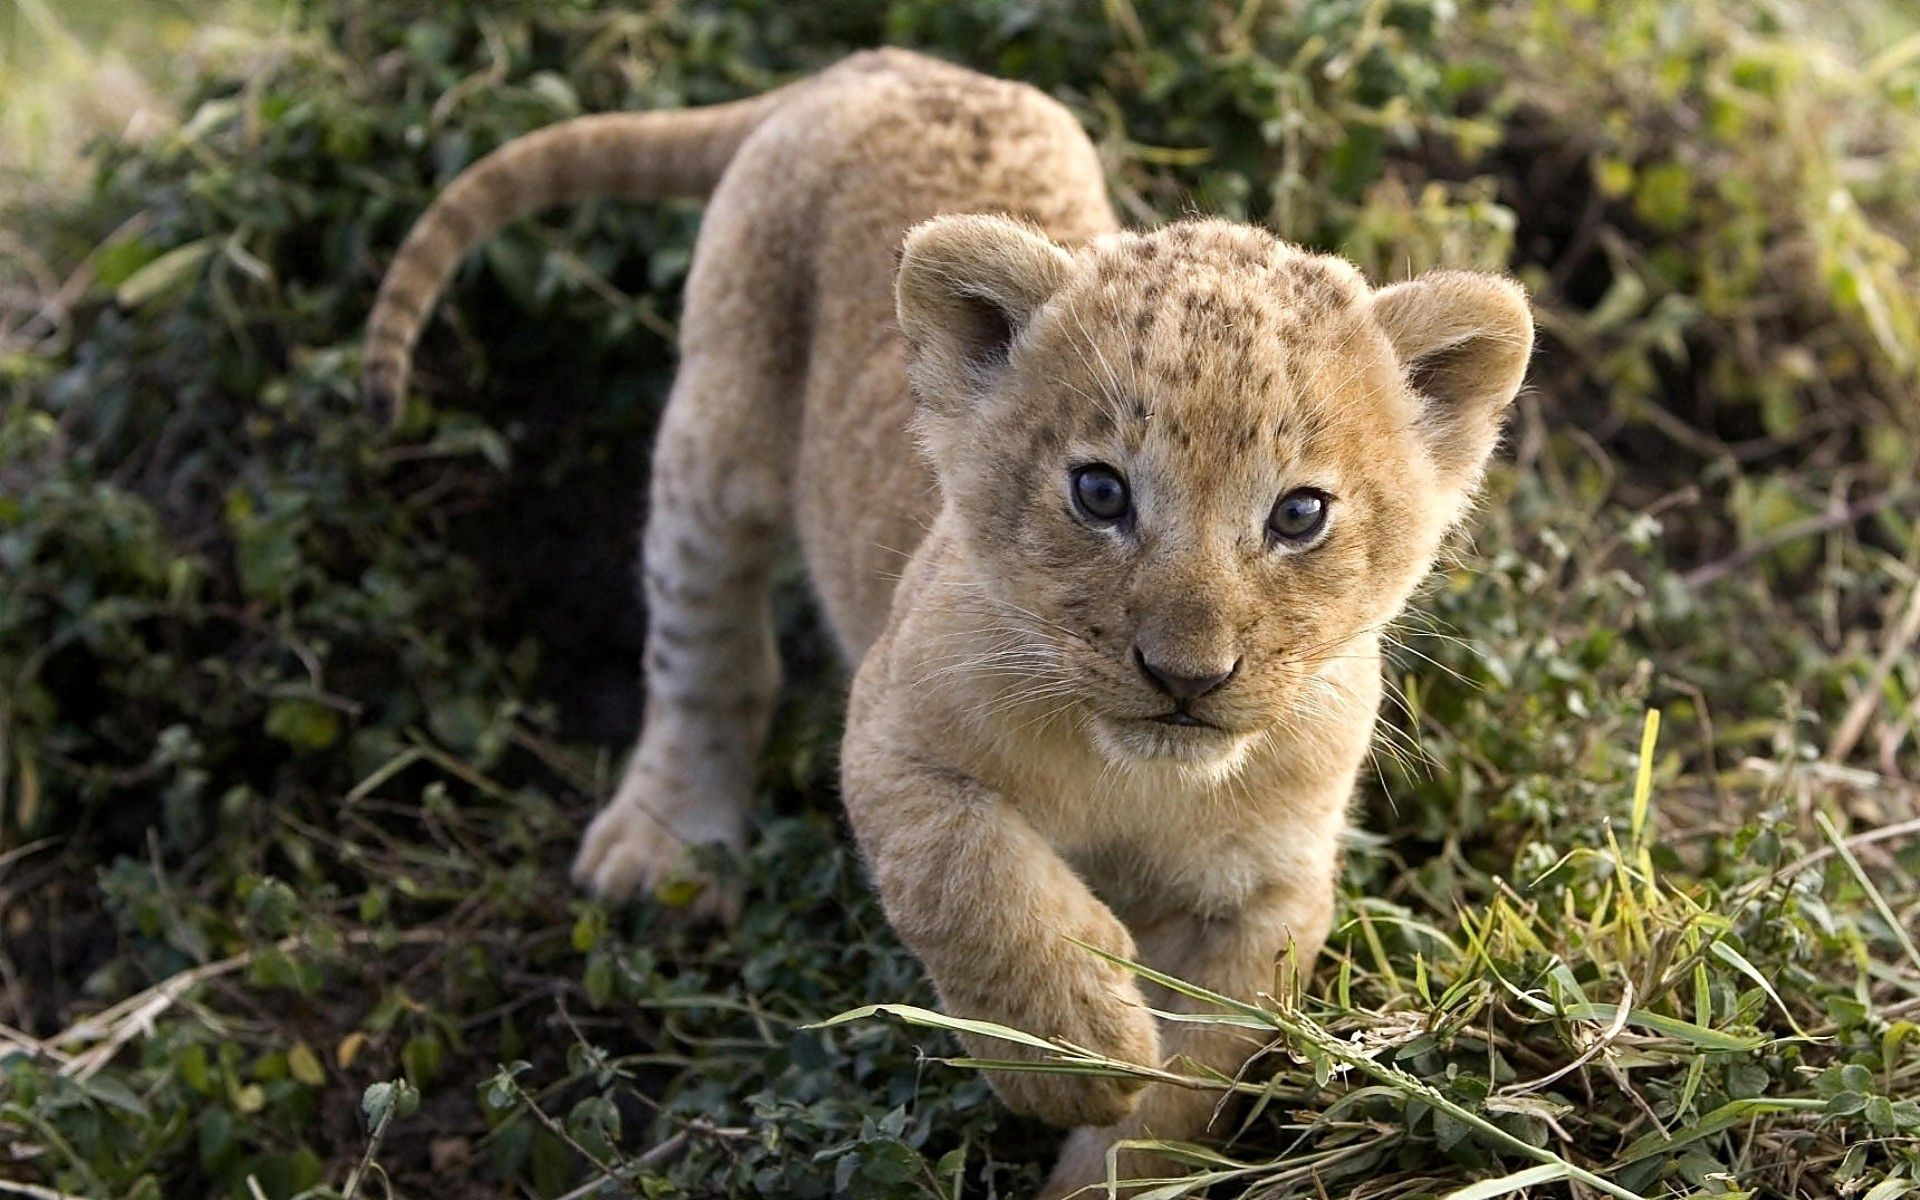 130881 download wallpaper Animals, Cheetah, Young, Joey, Muzzle, Predator screensavers and pictures for free